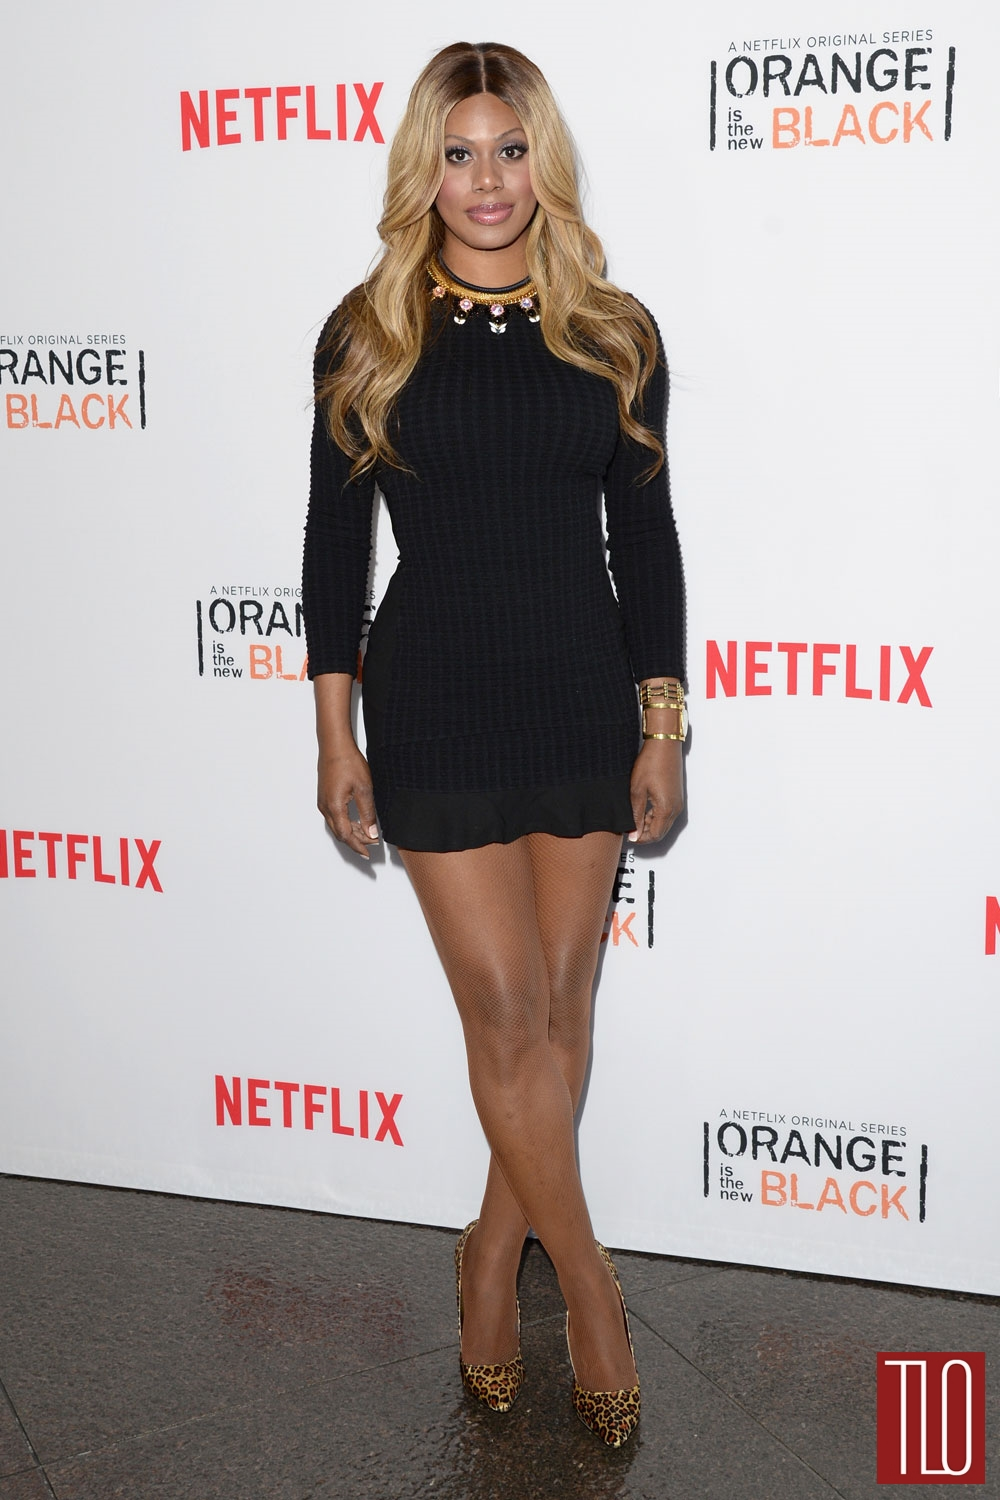 Laverne-Cox-Orange-Is-The-New-Black-Discussion-Panel-Tom-Lorenzo-Site-TLO (1)